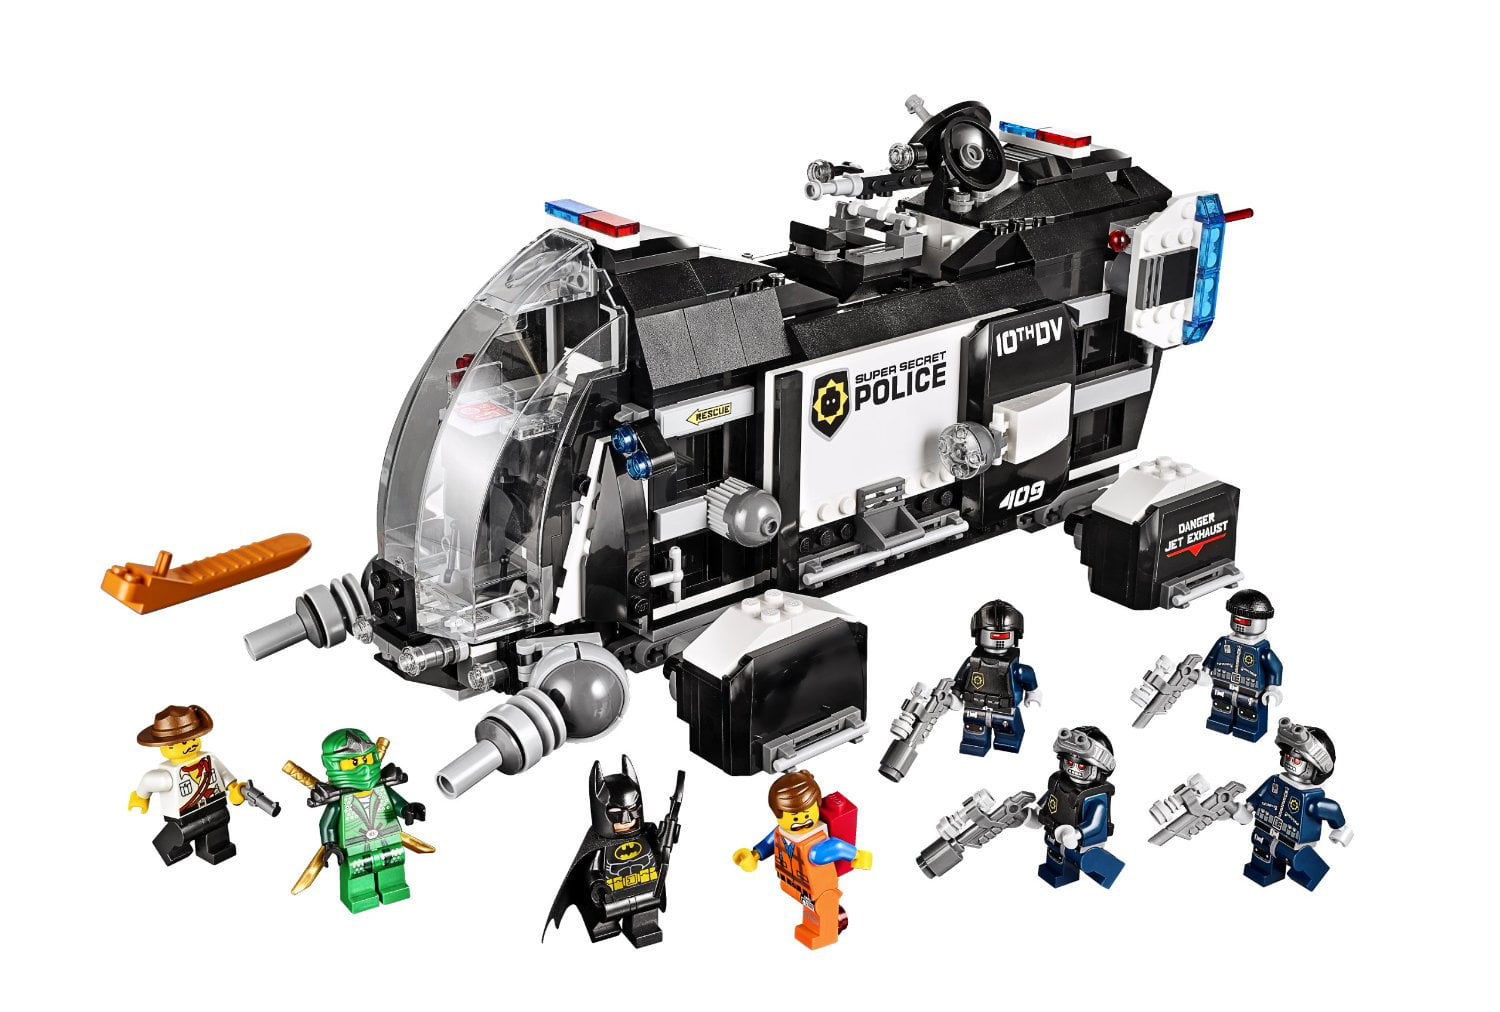 THE Lego MOVIE Super Secret Police Dropship w  8 Minifigures | 70815 by Lego